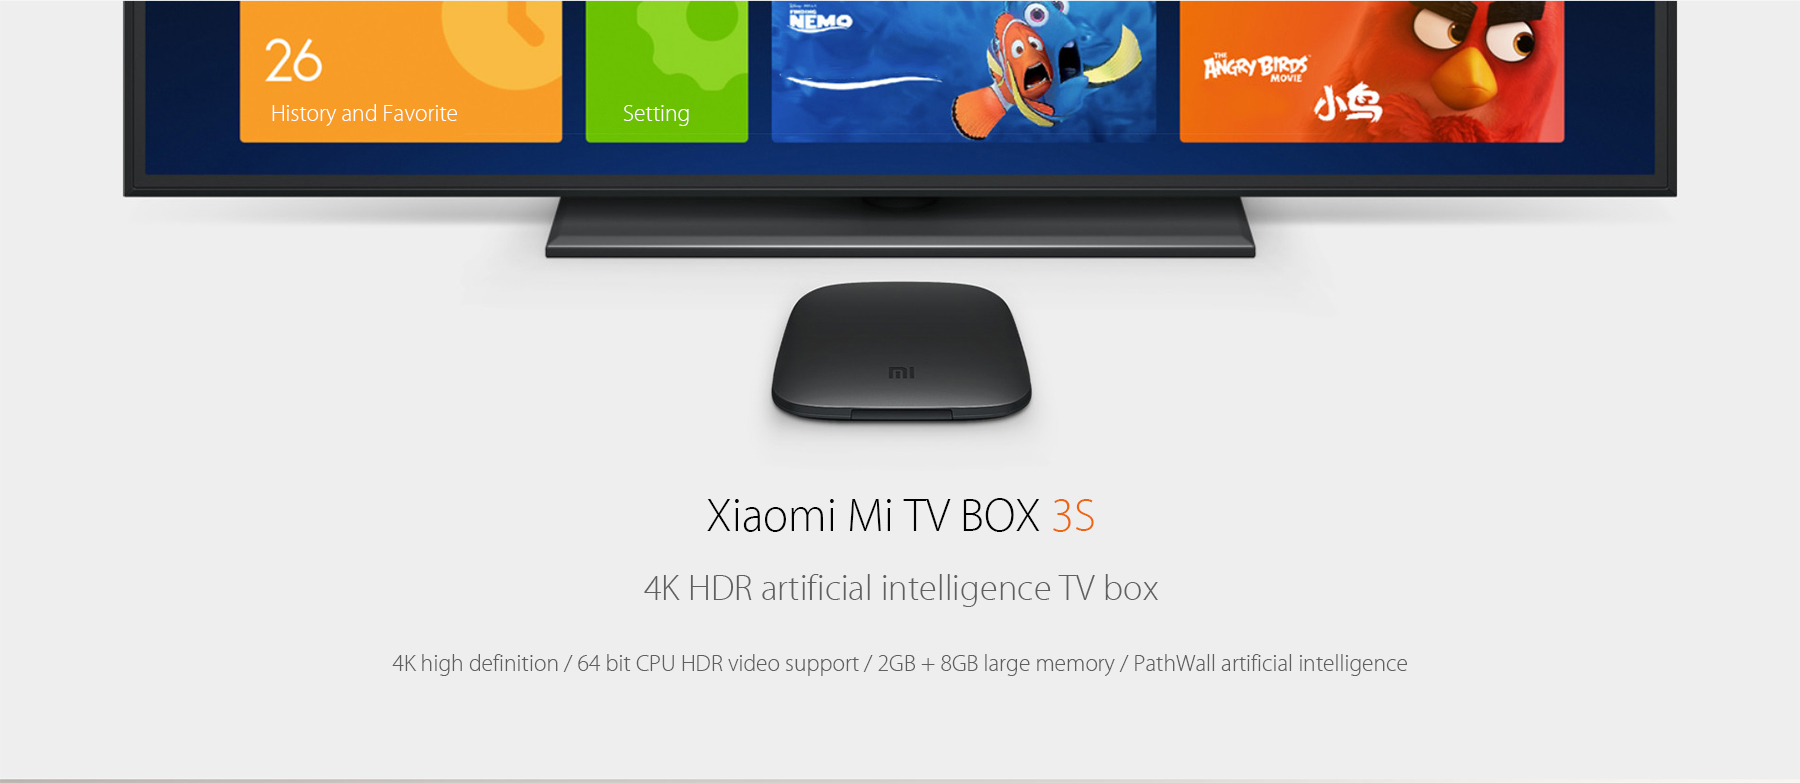 Origine Xiaomi Mi 3S TV Box 4K 64bit Android 6.0 Media Player Quad Core Amlogic S905X Dolby DTS HDMI